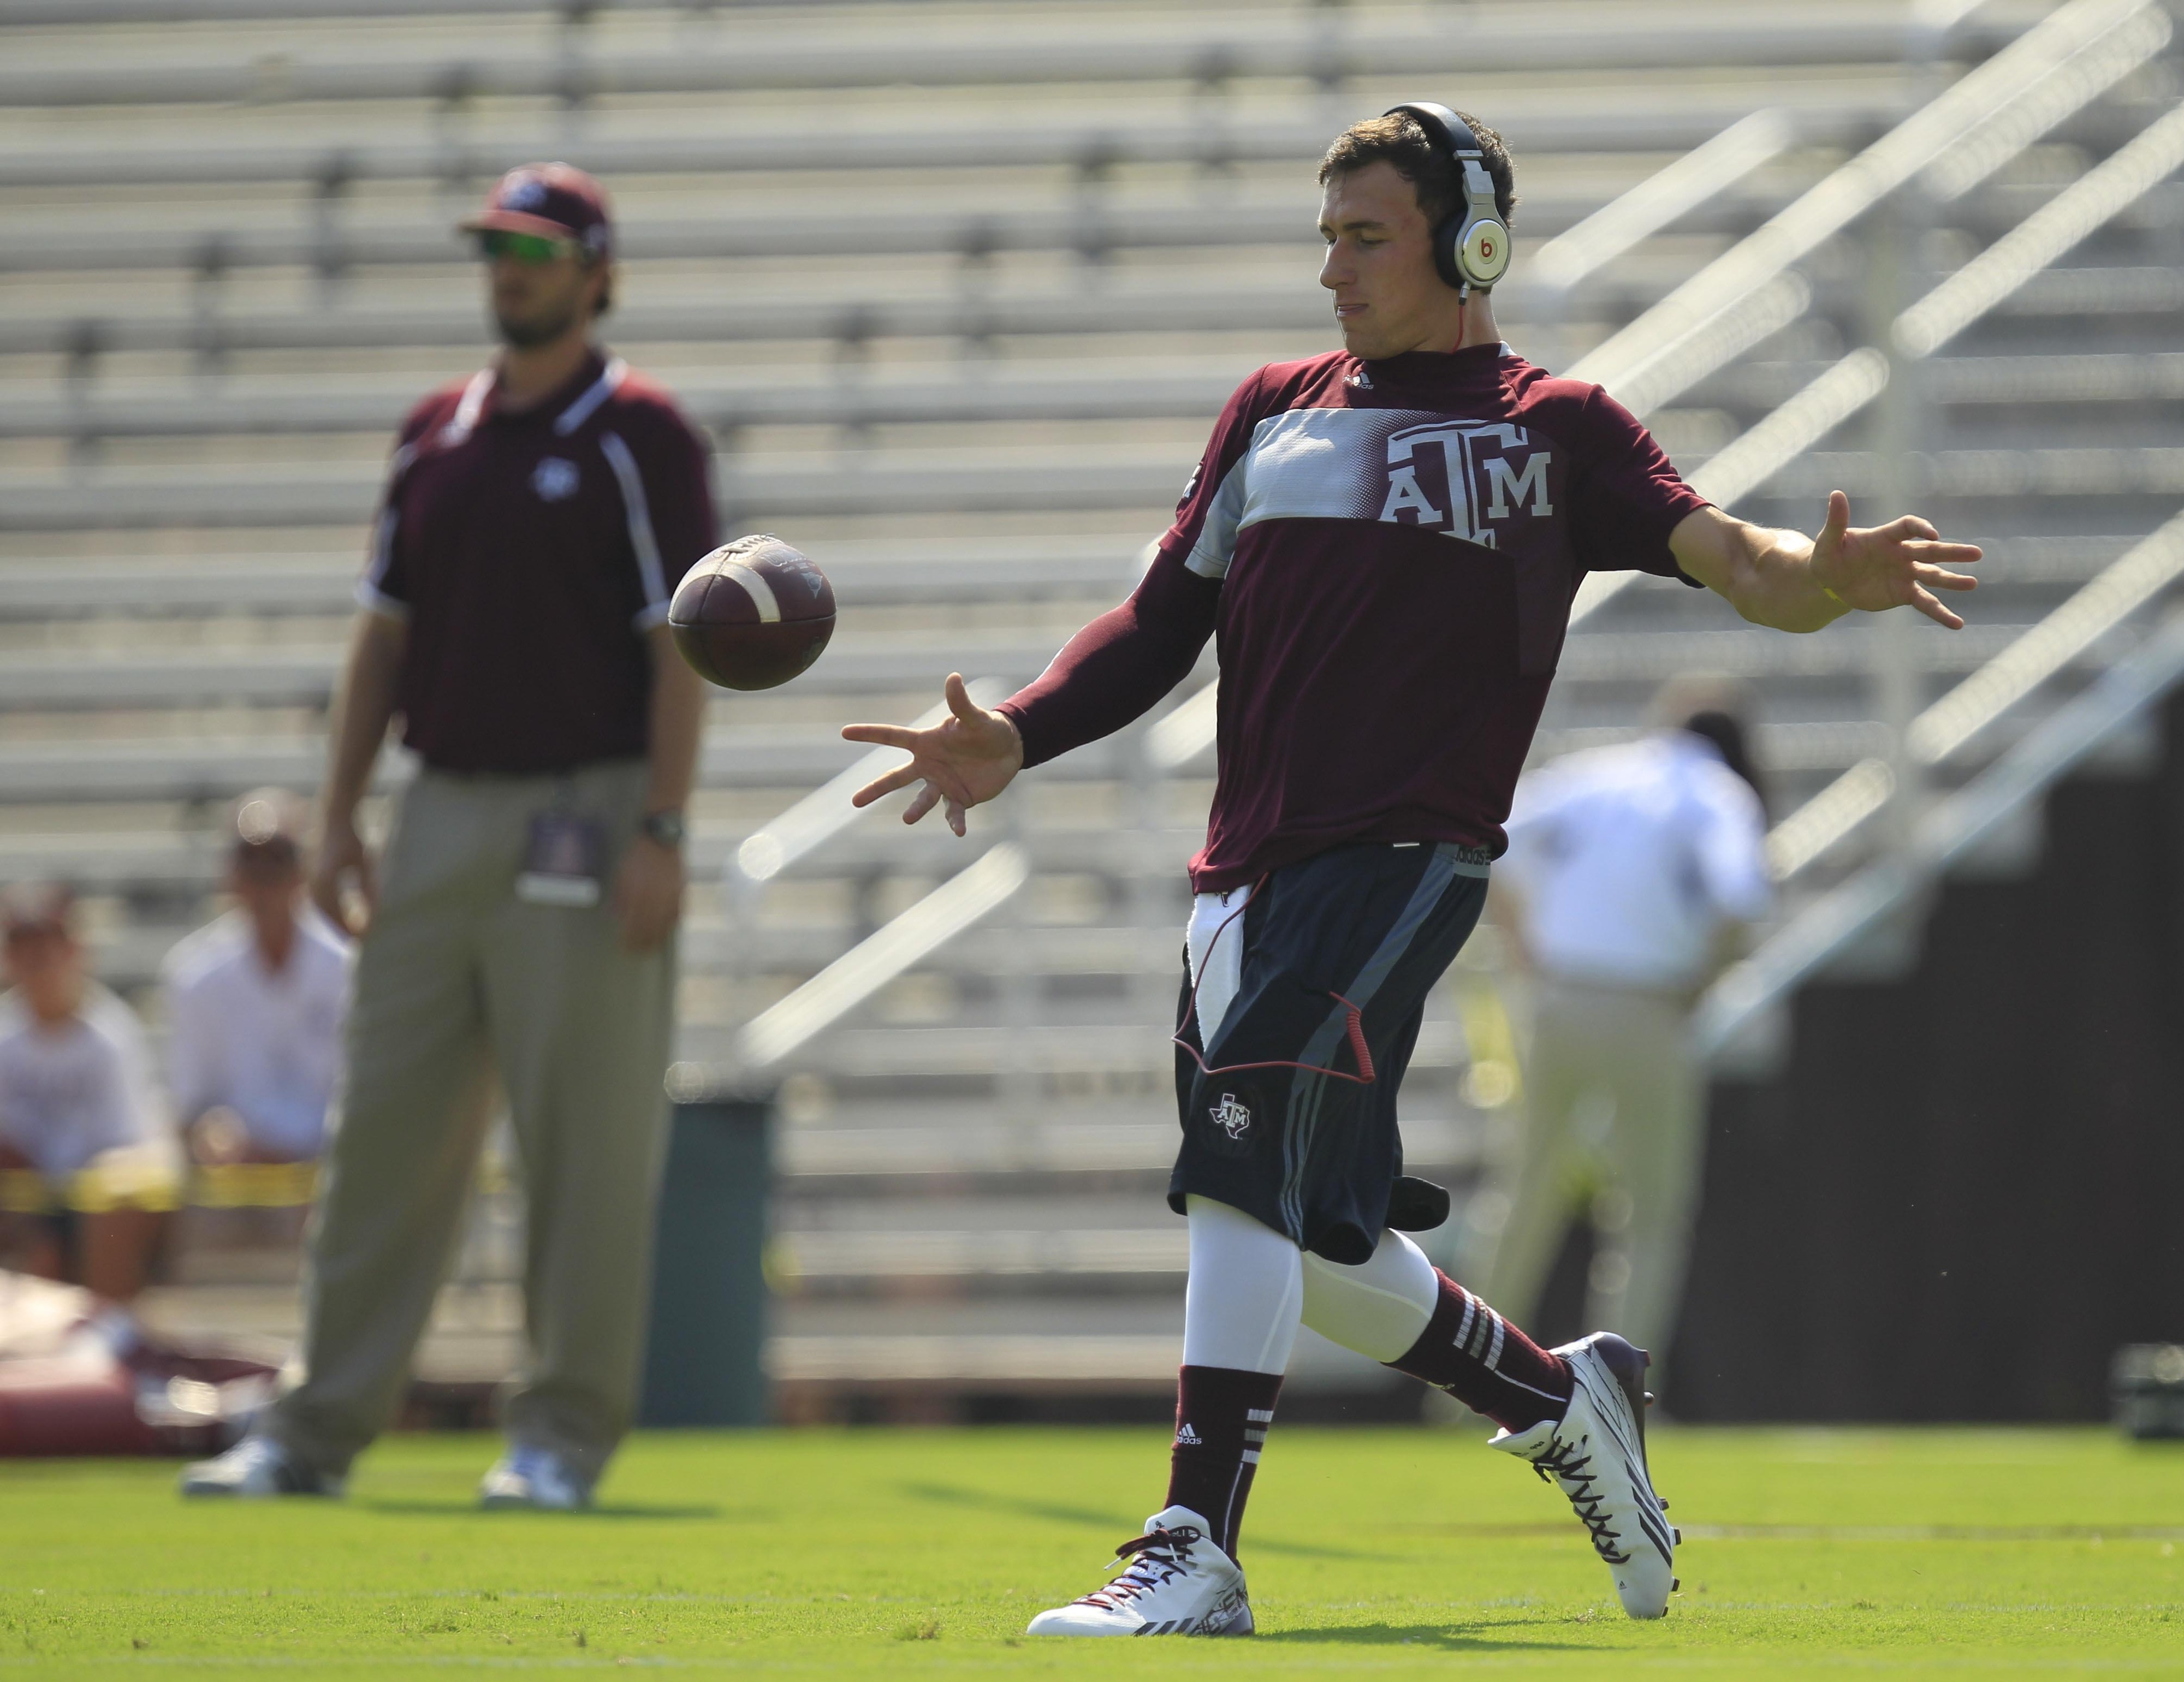 Part of Johnny Manziel's punishment is he must take part in special teams practice.